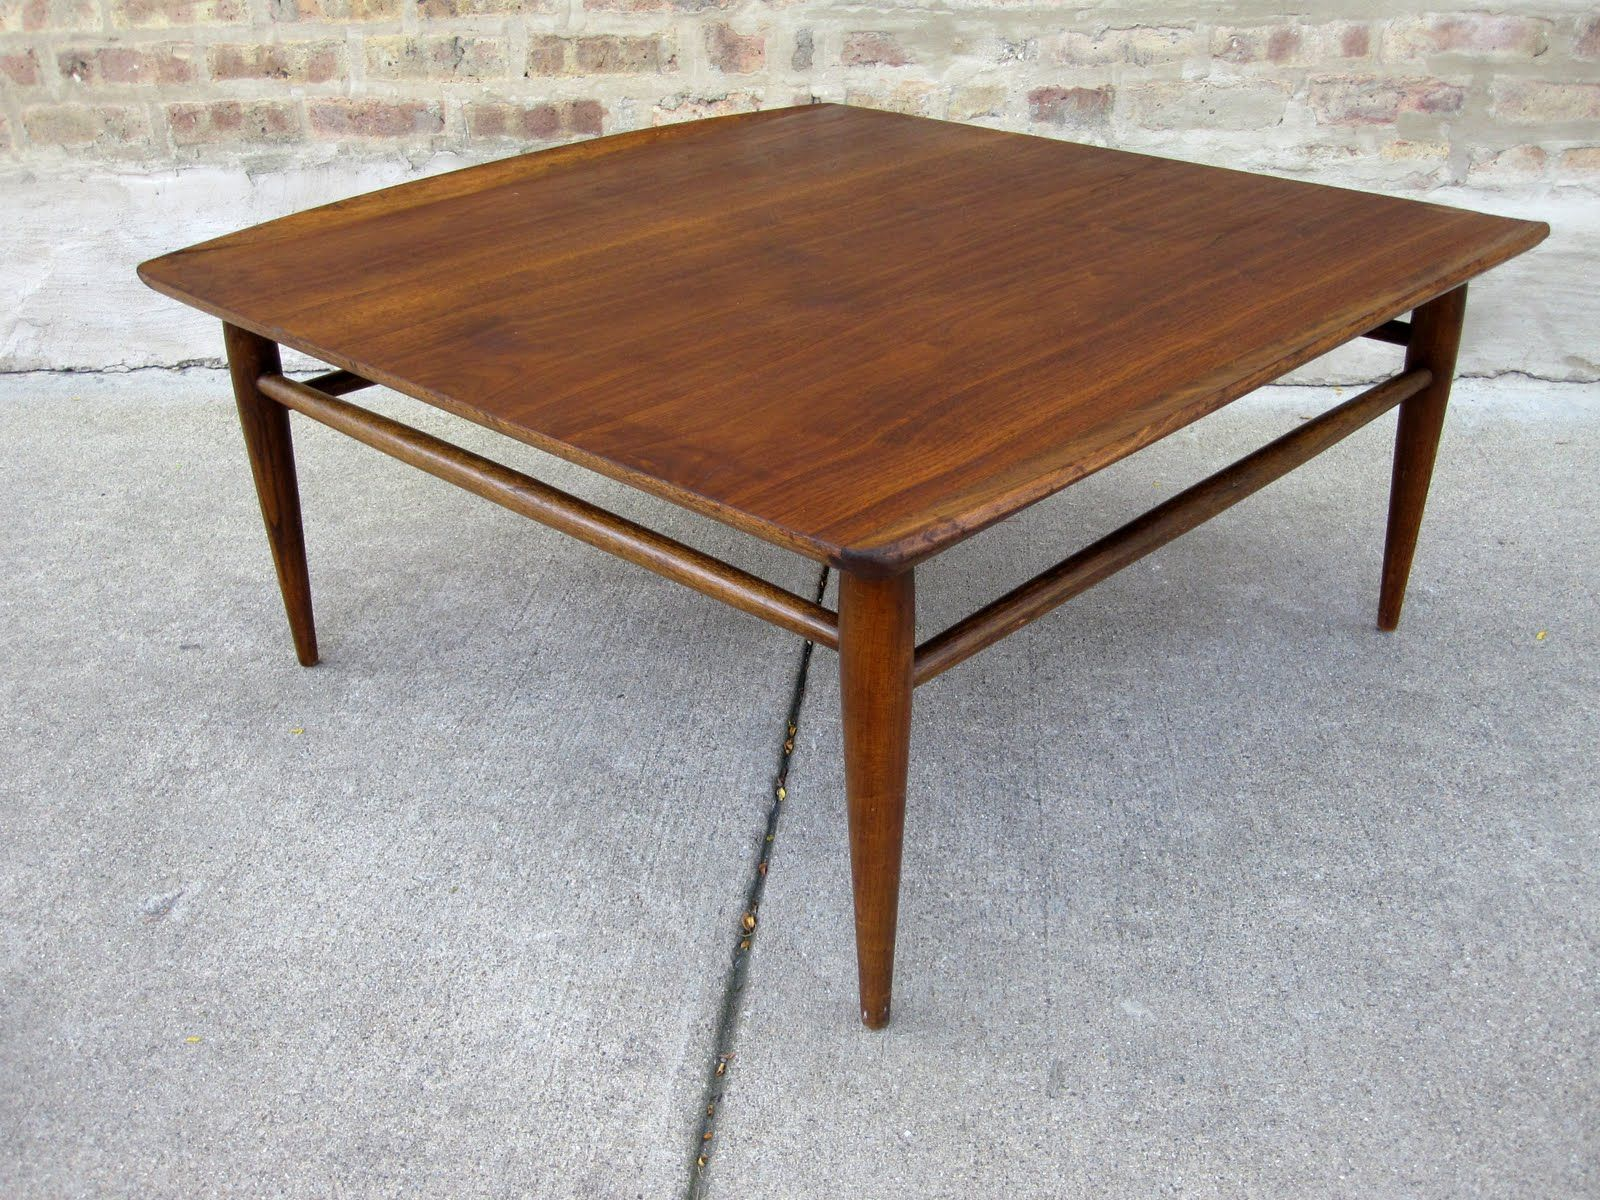 Square drexel coffee table mid century mania pinterest square drexel coffee table geotapseo Image collections